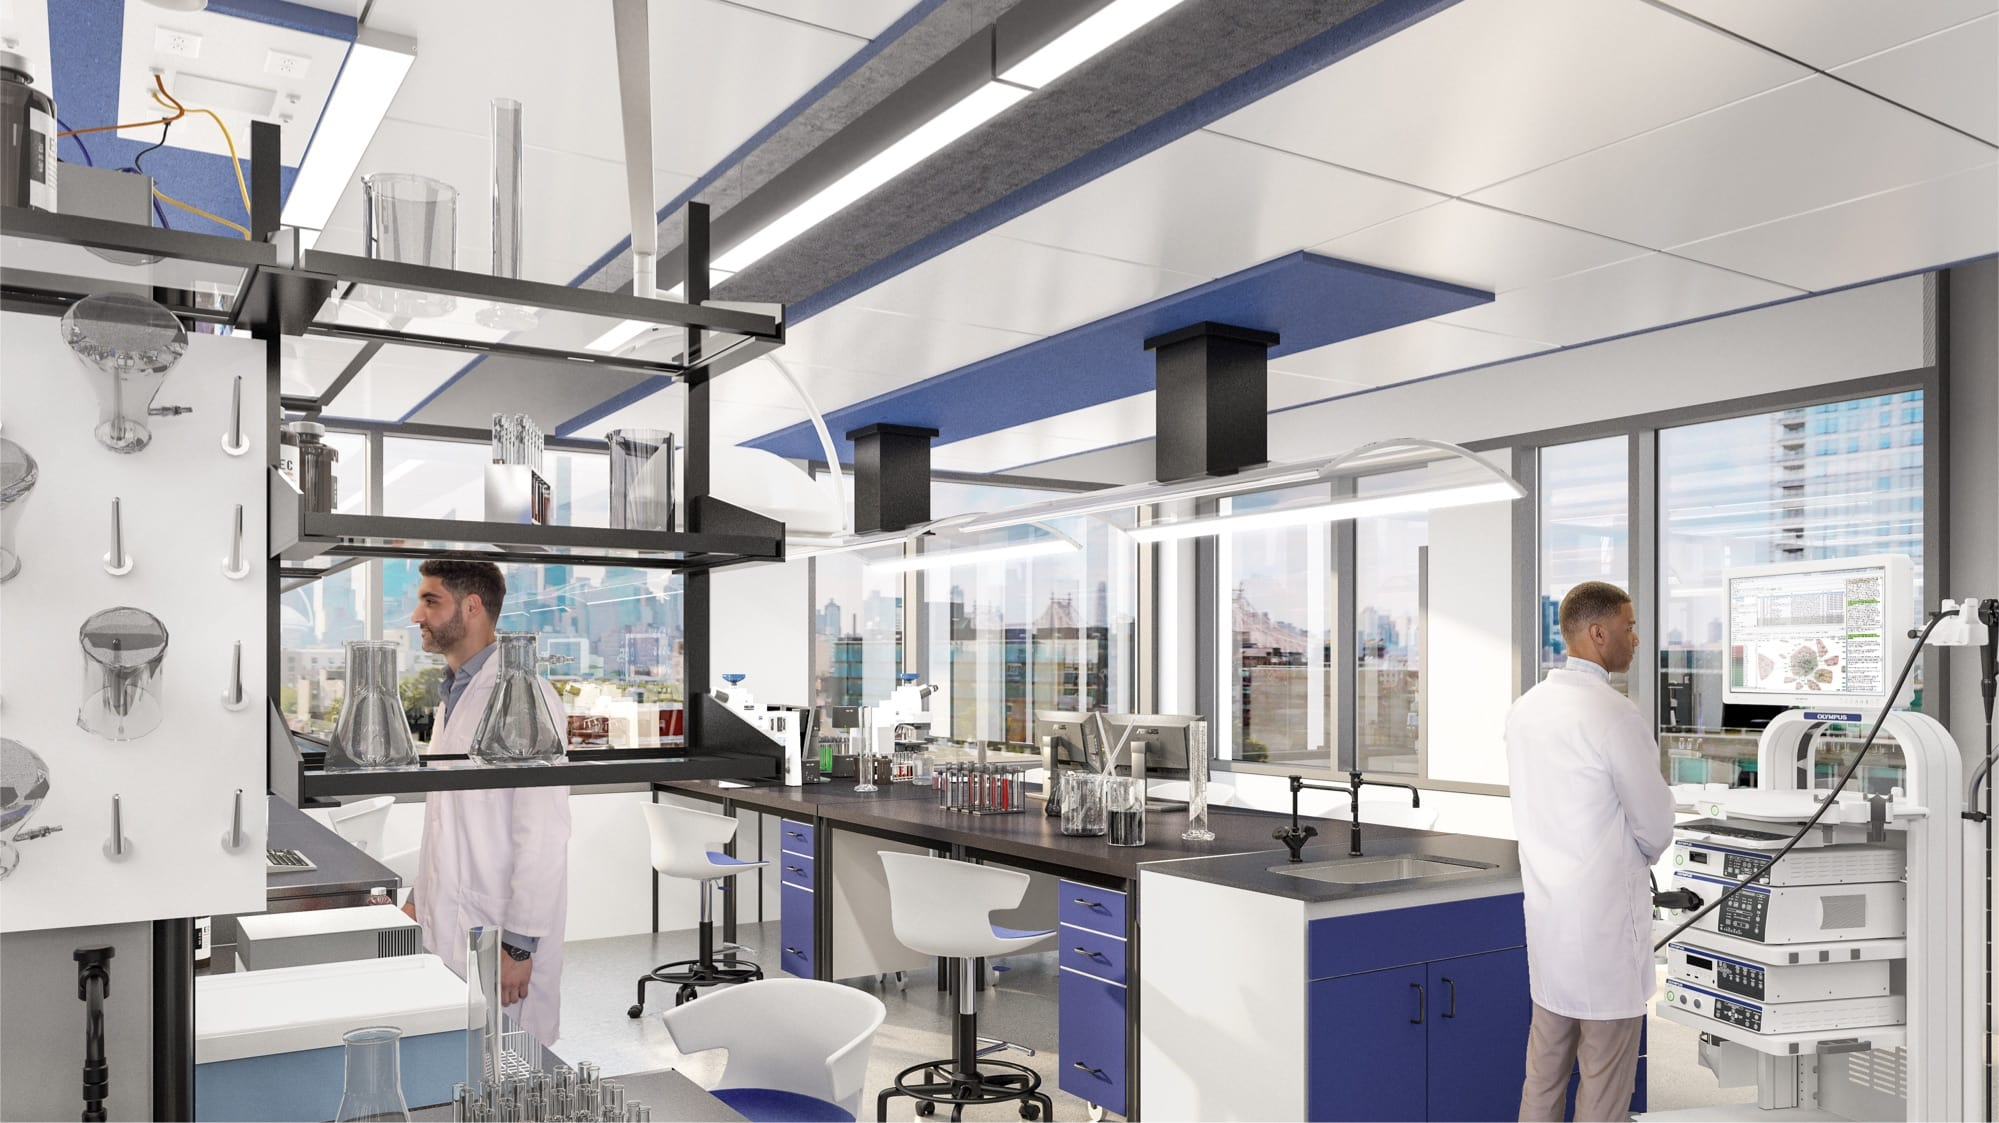 Two male scientists work in state-of-the-art lab space at Innolabs